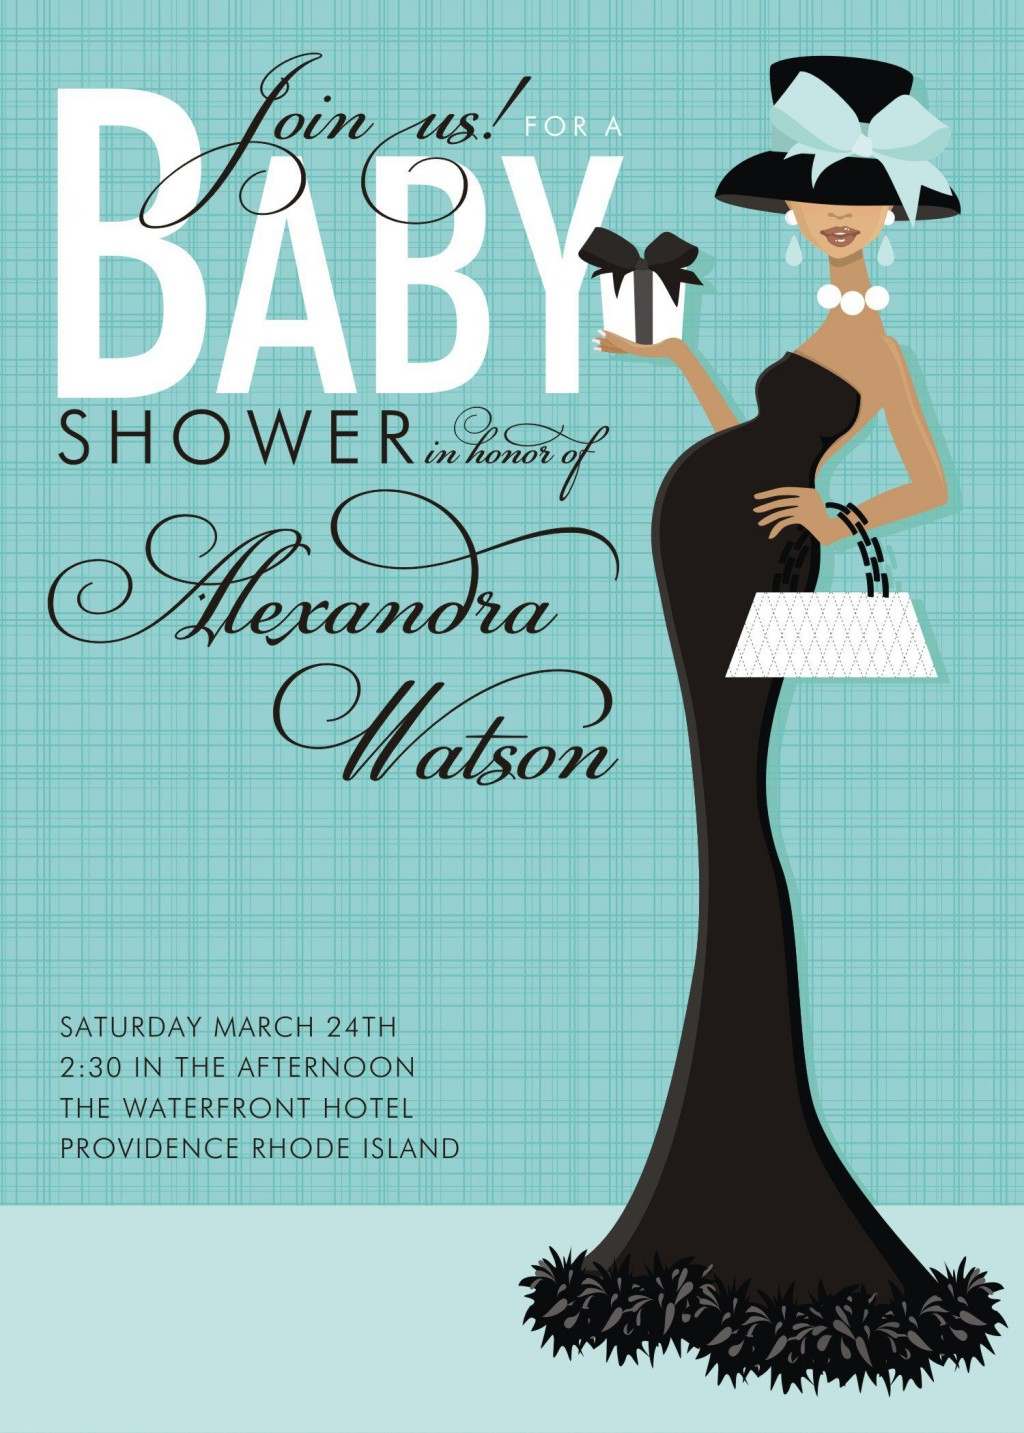 004 Imposing Baby Shower Invite Template Word High Resolution  Invitation Wording Sample Free ExampleLarge